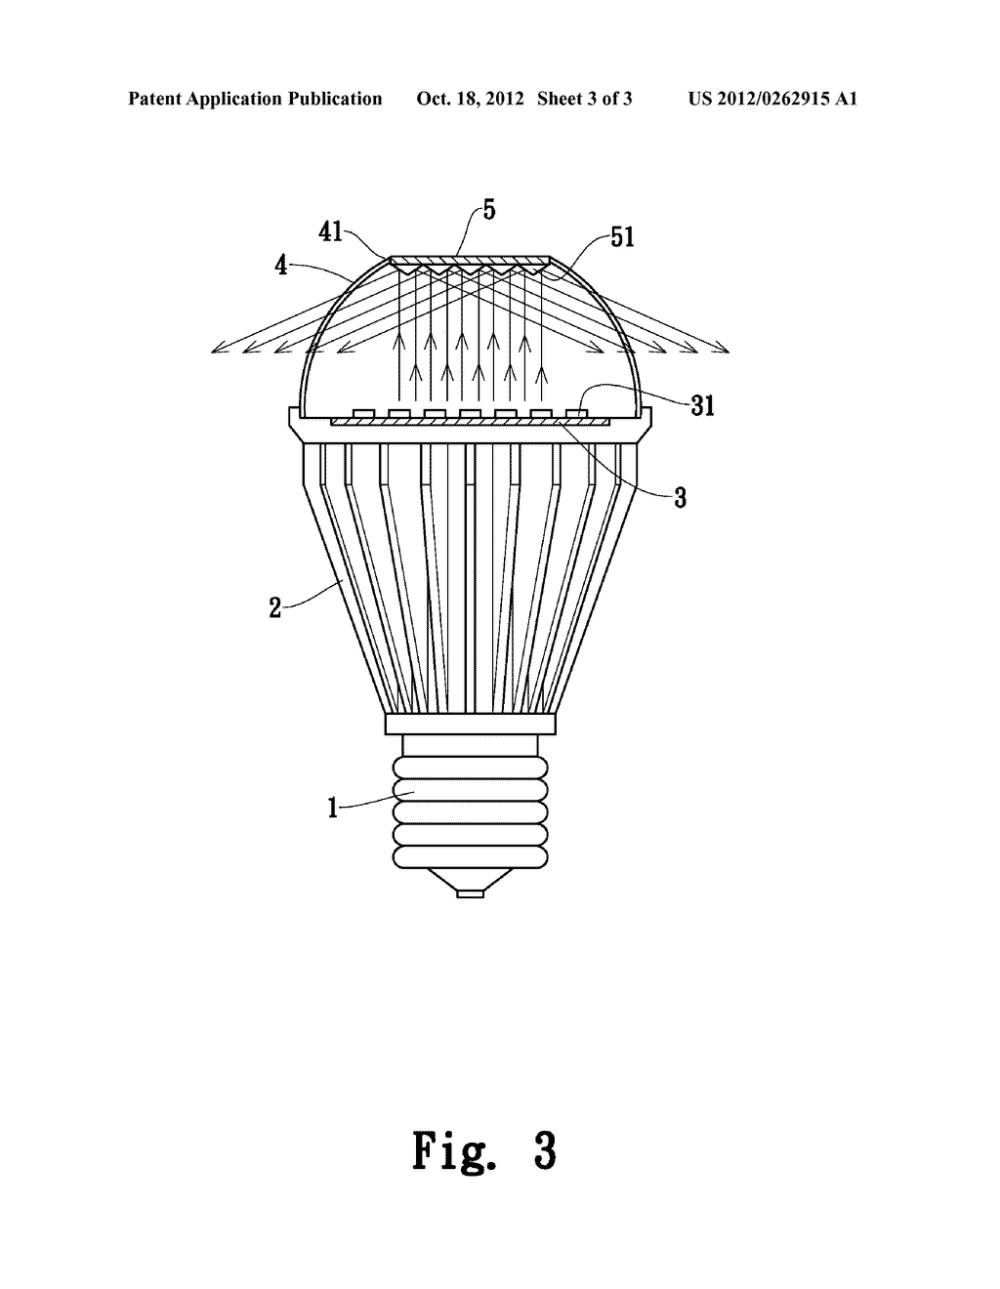 medium resolution of led light emitting diode lamp with light reflection diagram schematic and image 04